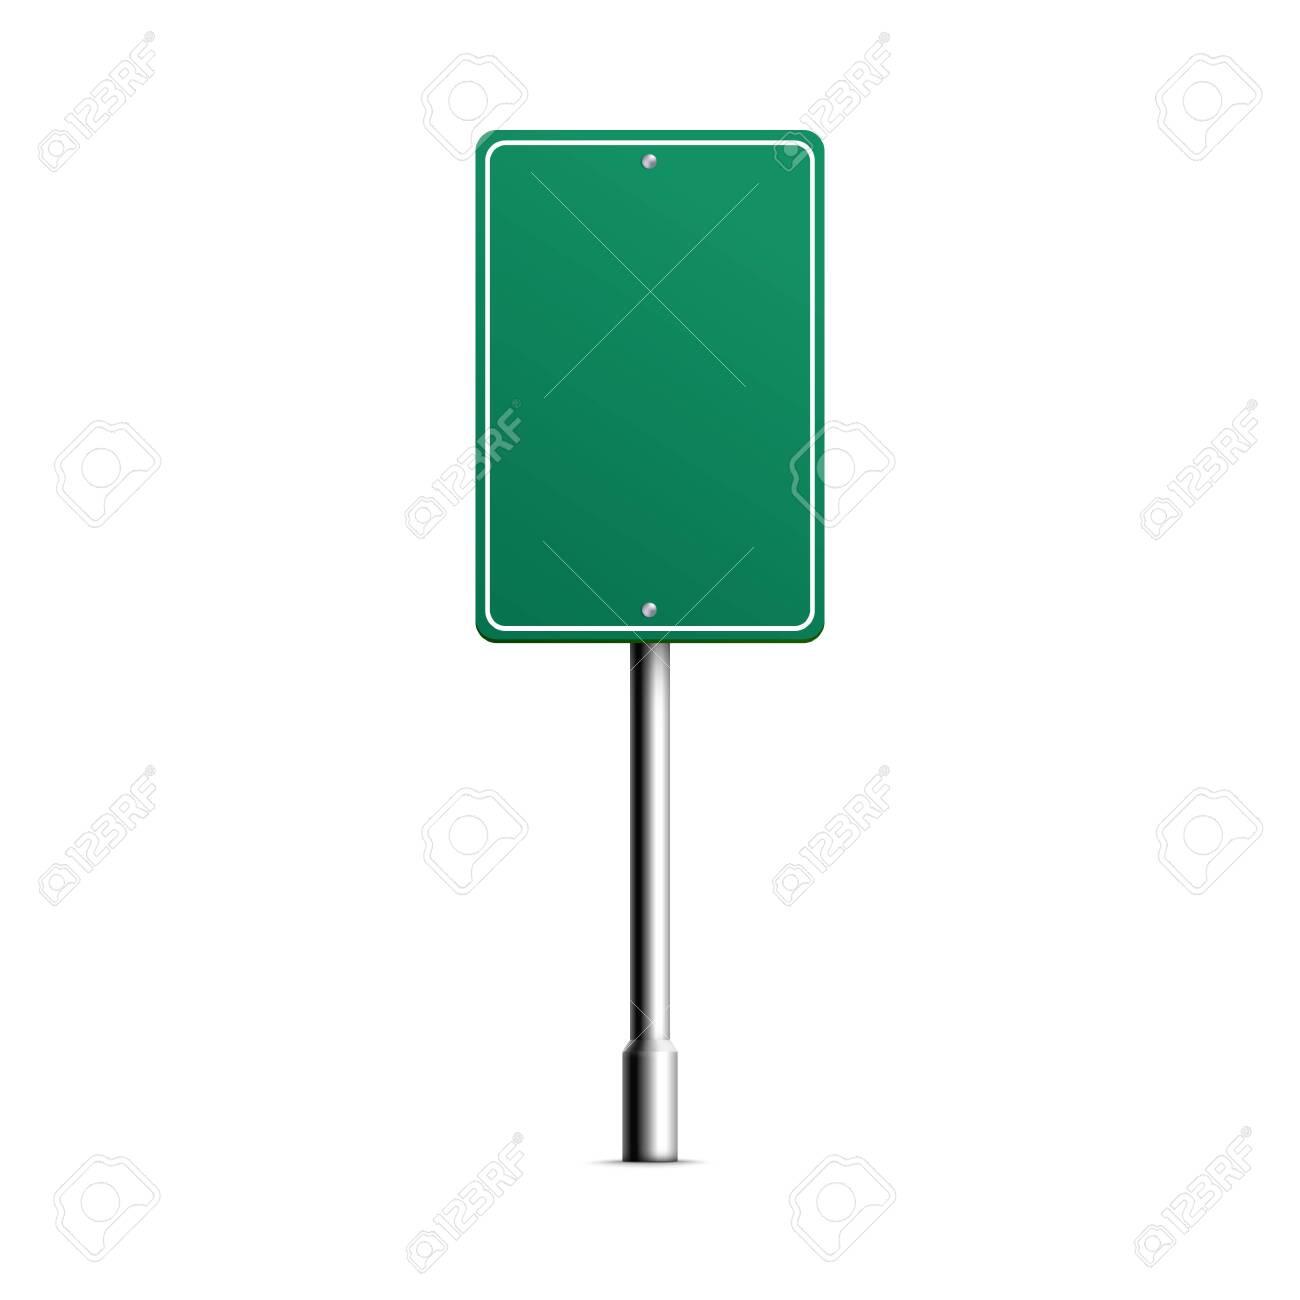 Empty green square shield of road sign mockup, realistic vector illustration isolated on white background. City traffic direction signpost or sign template. - 145341560